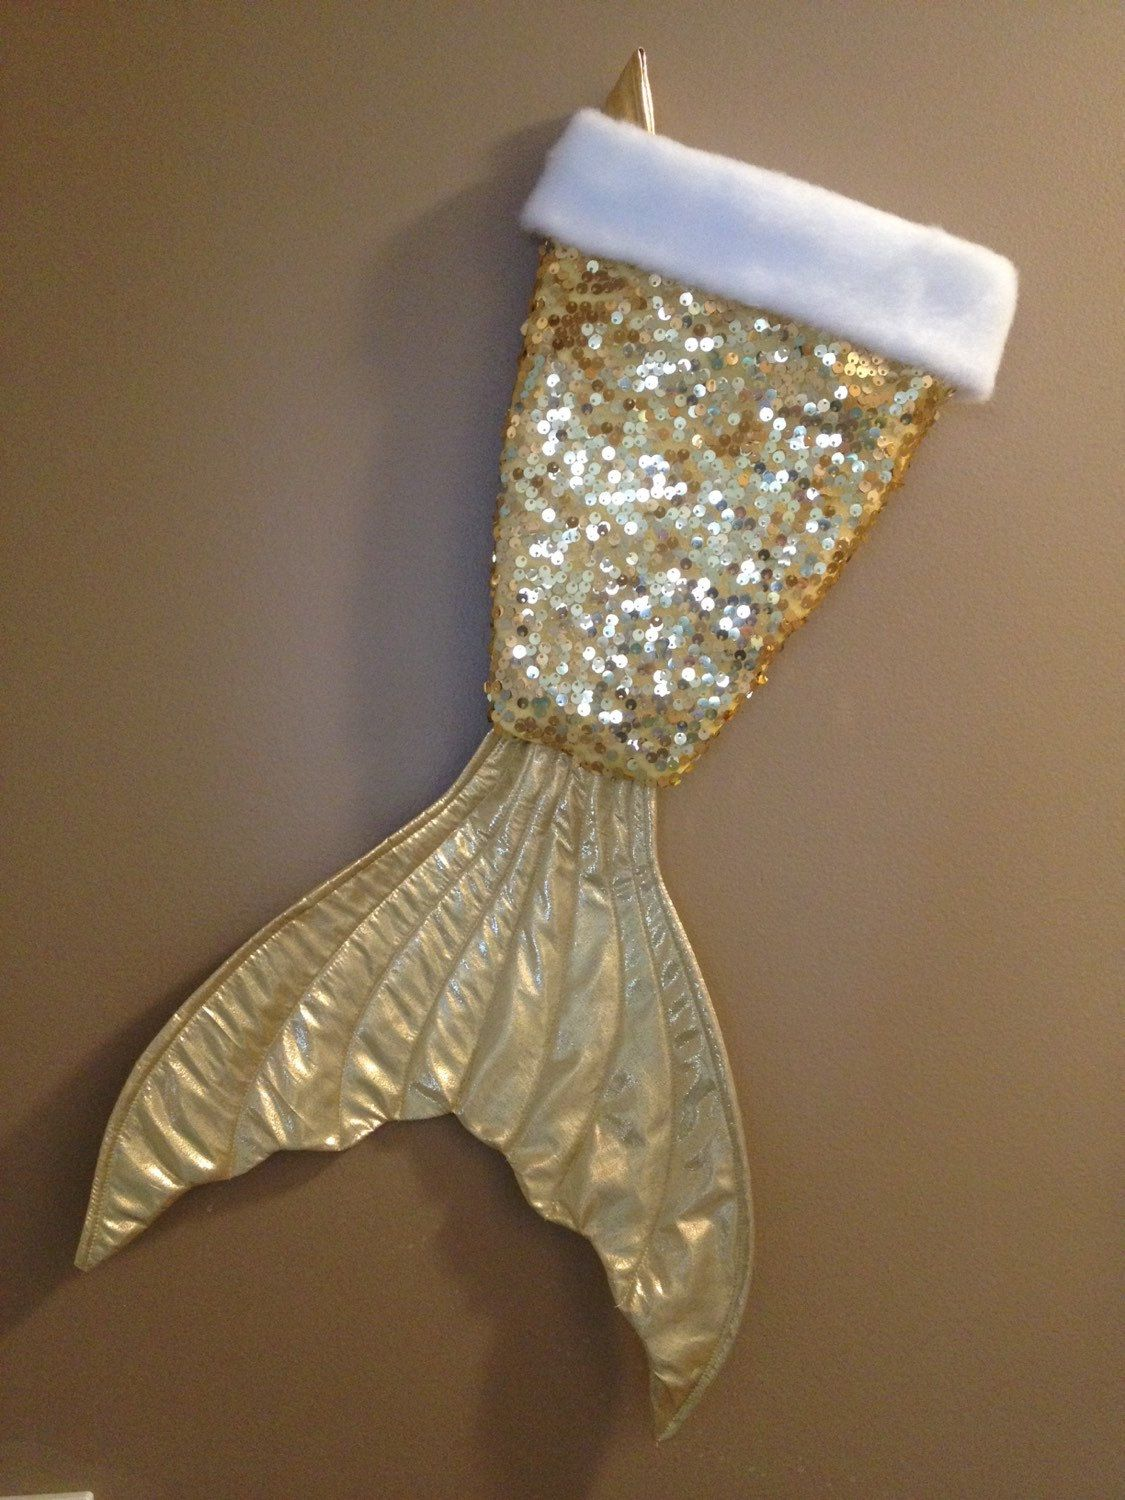 Mermaid Gift Ideas Mermaid Tail Christmas Stocking Gold Sequin Gold Shiny